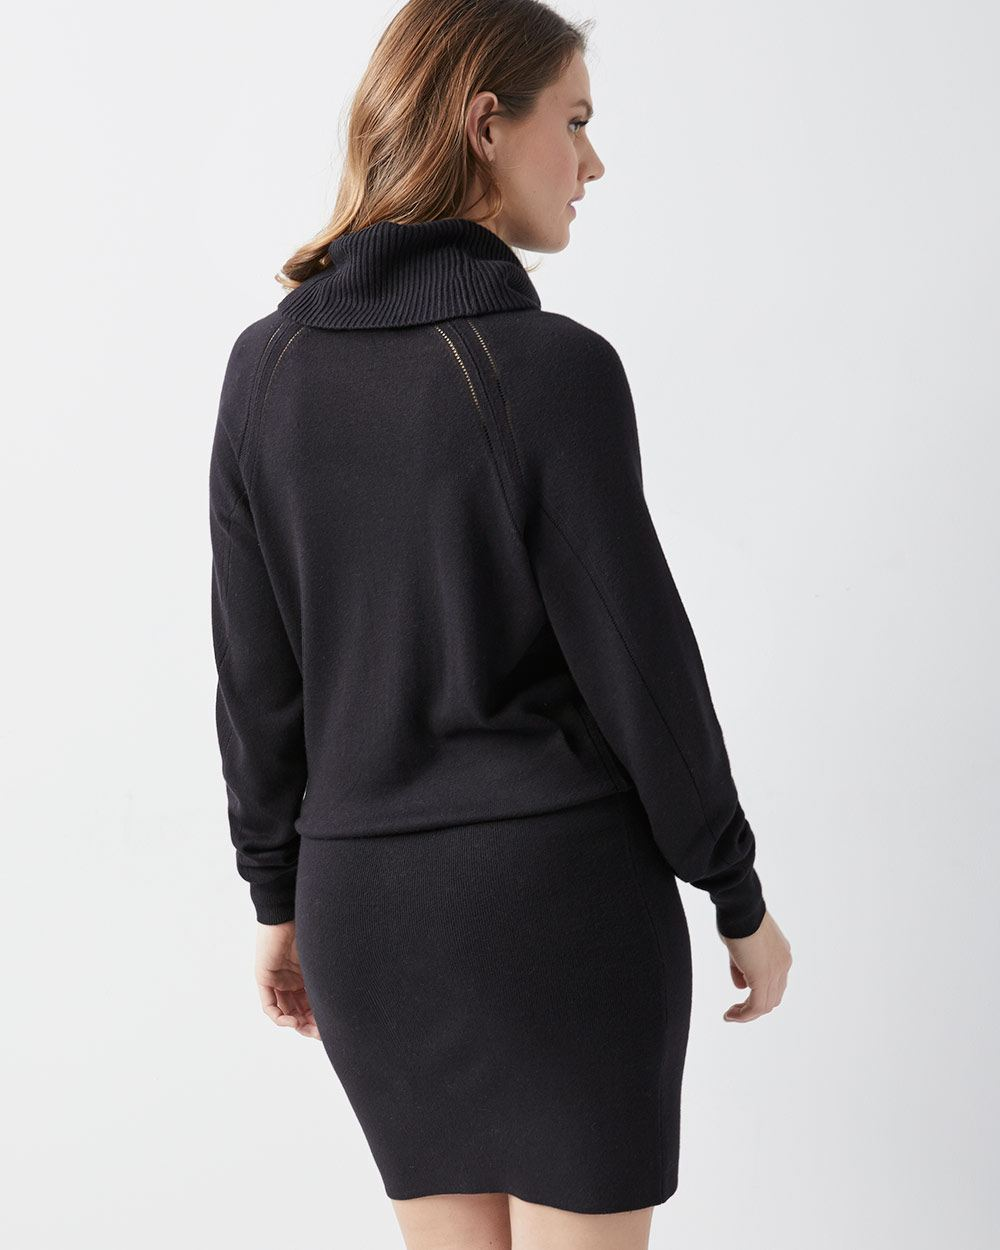 To acquire Sweater Neck dress picture trends